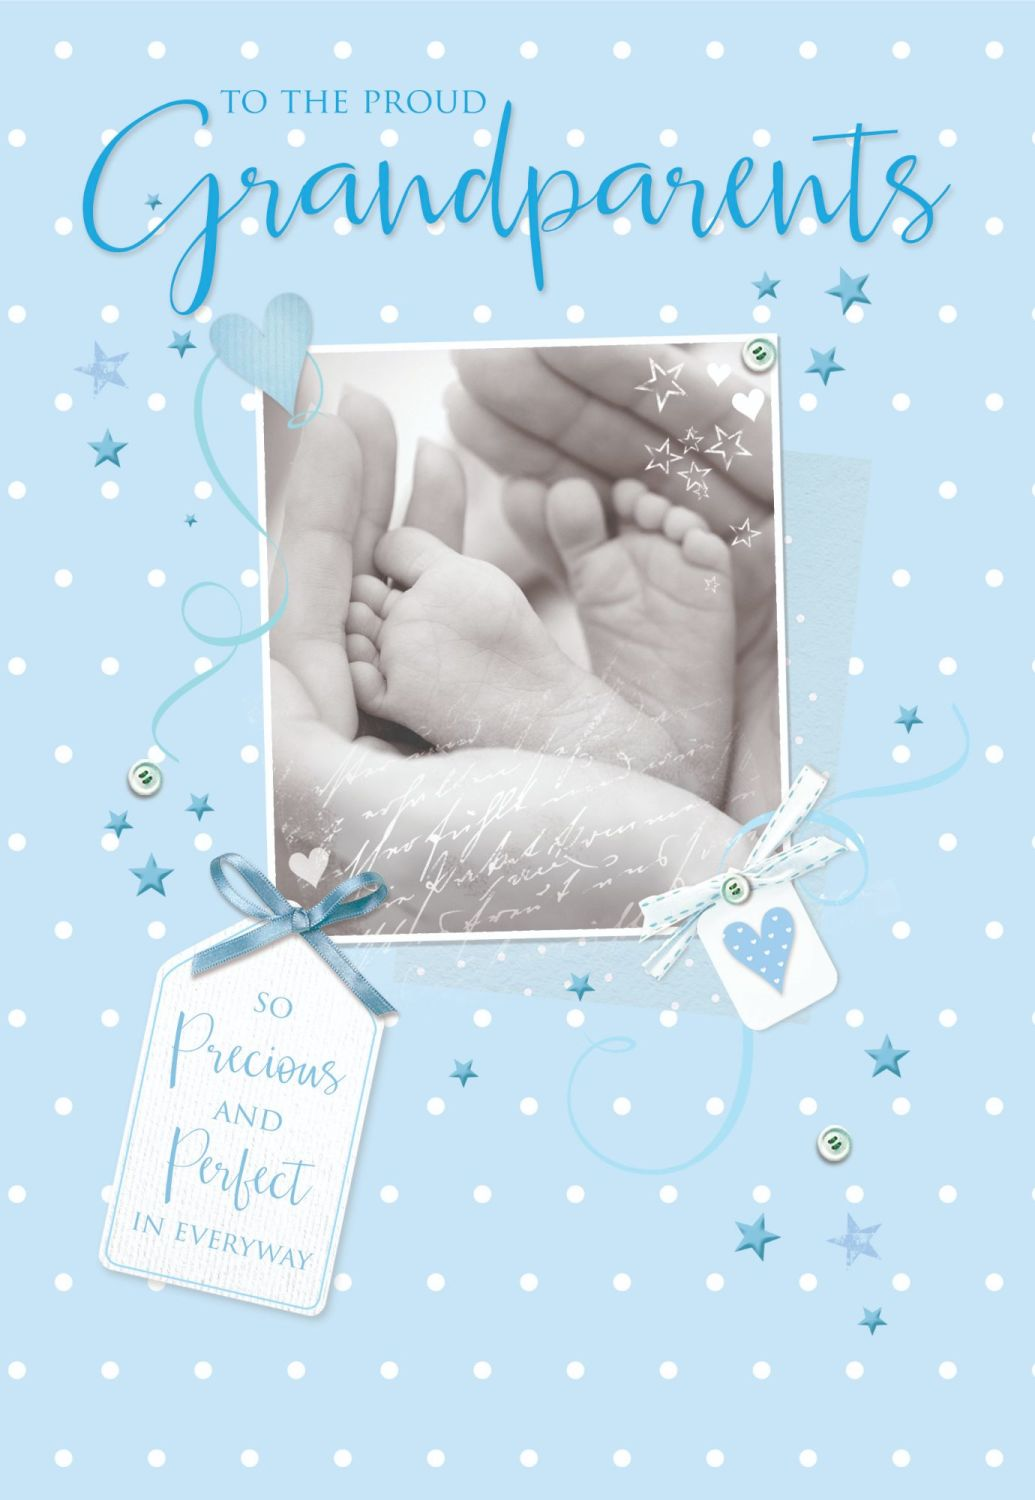 New Grandparents Cards - TO The Proud GRANDPARENTS - NEW Baby BOY - New BAB